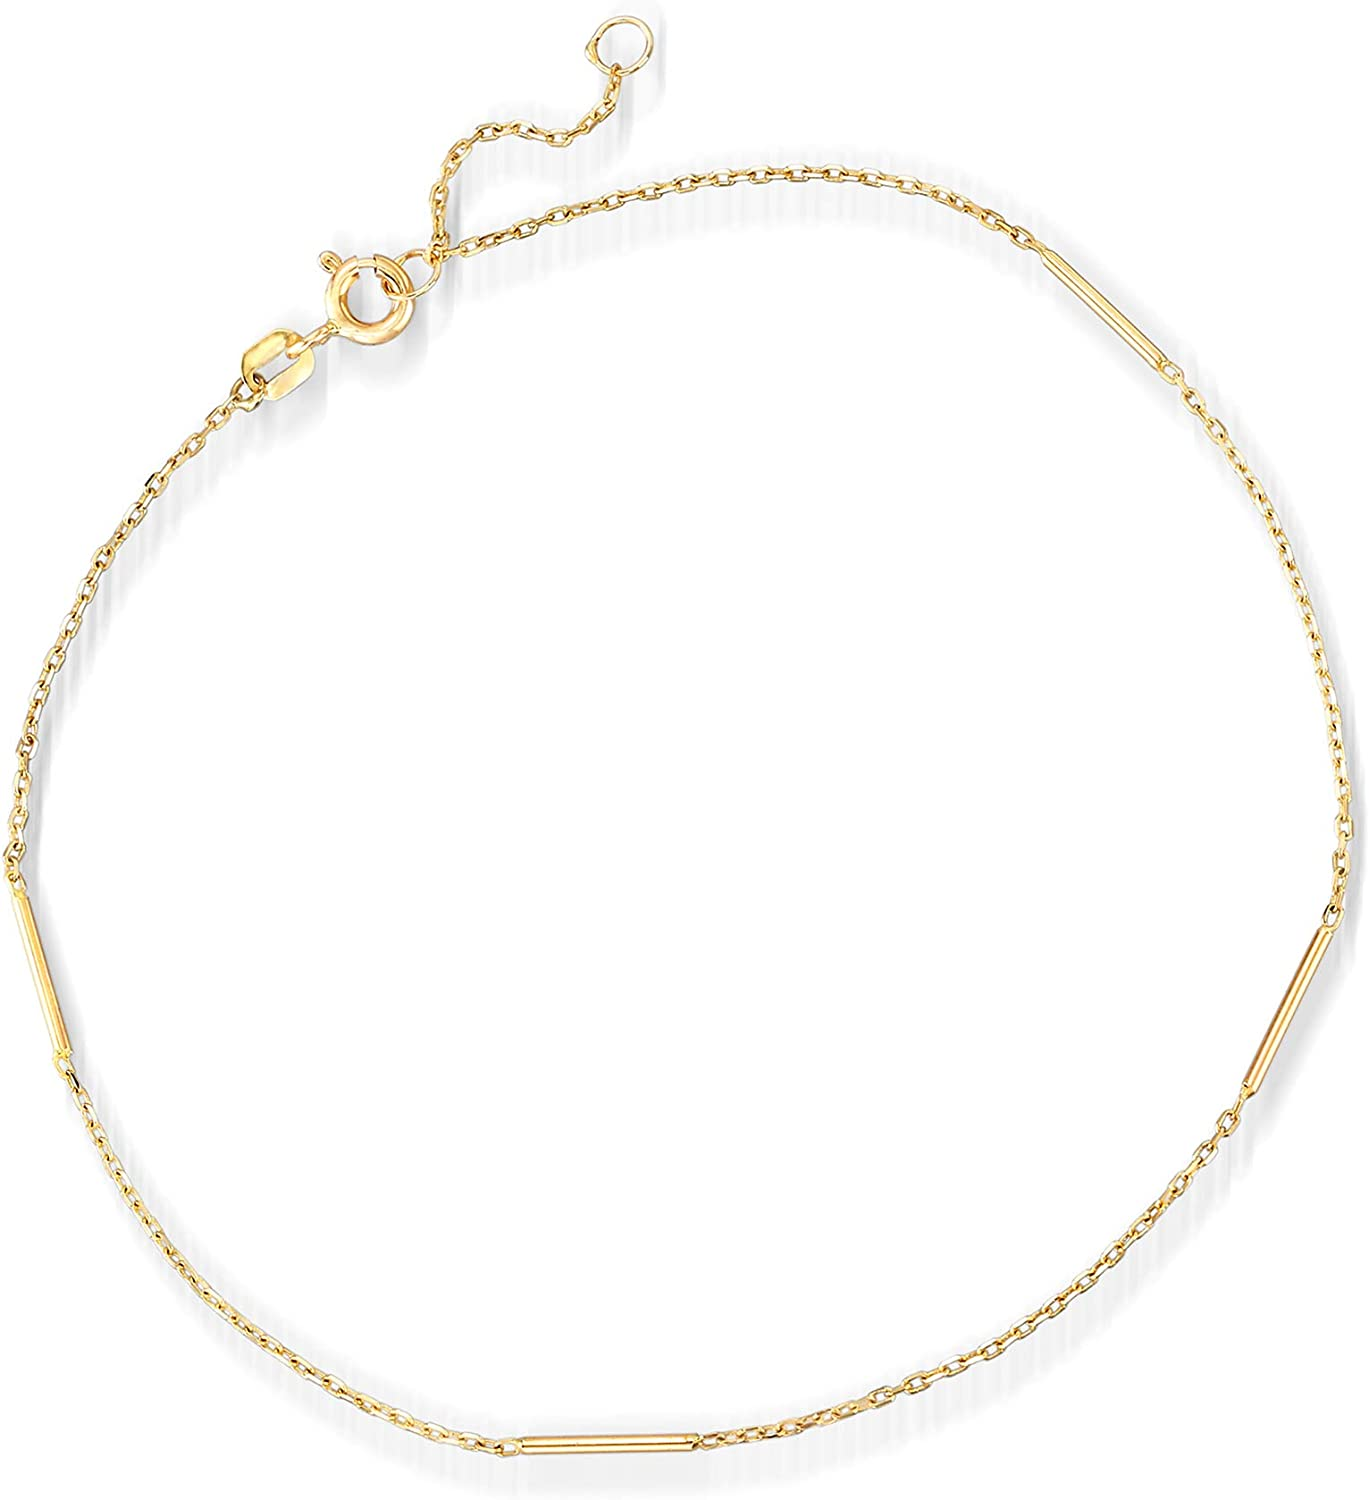 Ross-Simons Italian 14kt Yellow Gold Station Bar Anklet. 9 inches